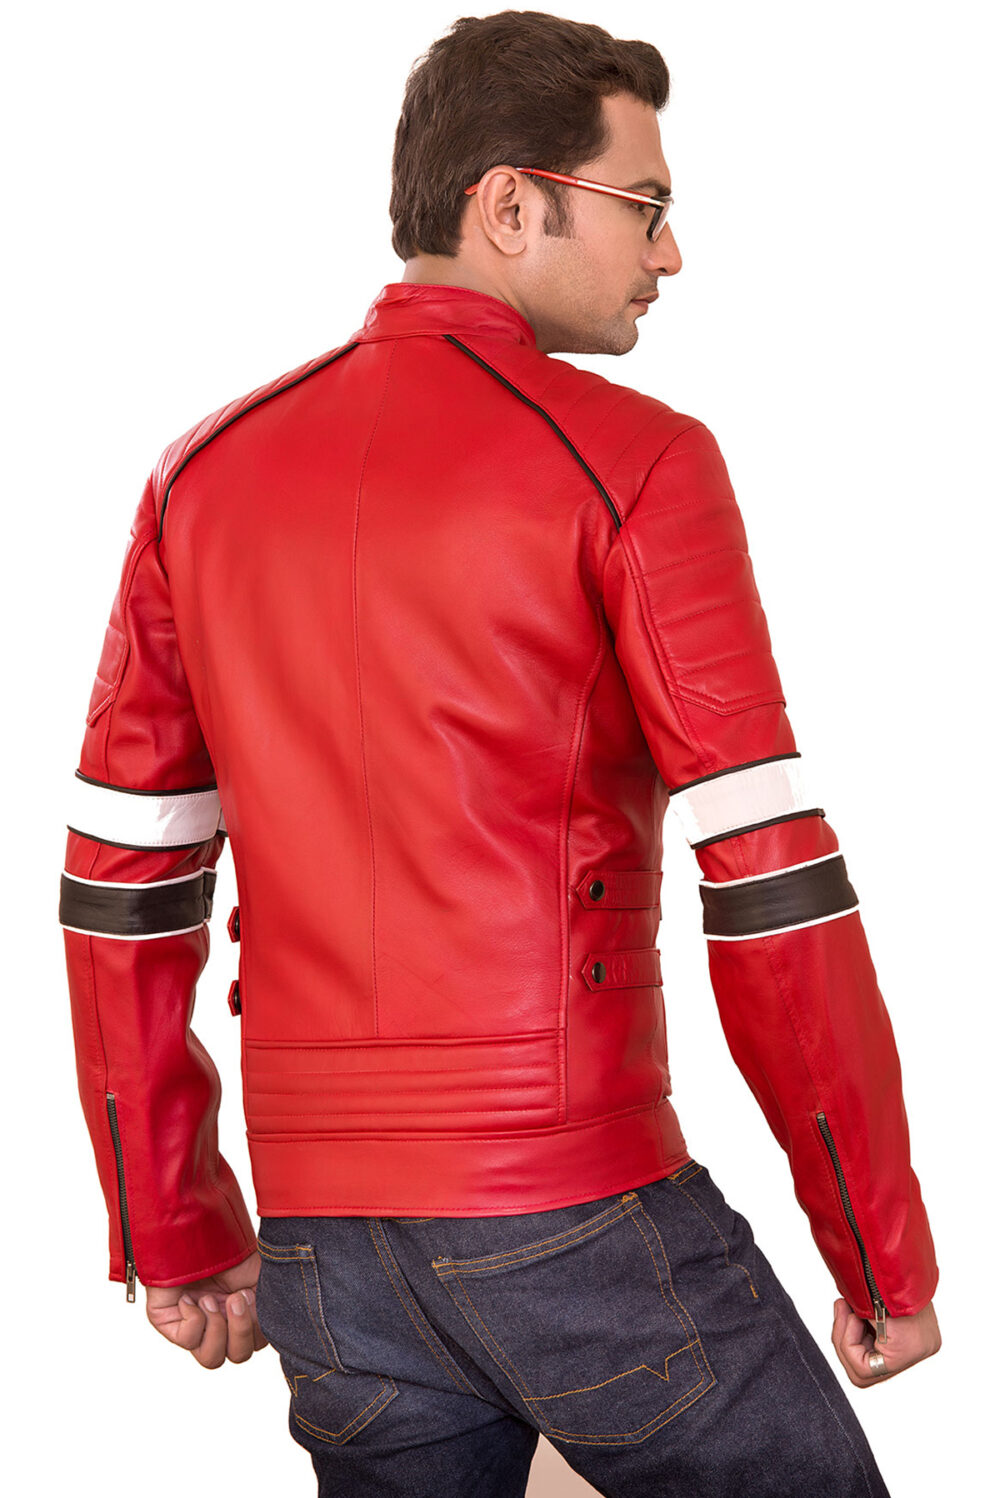 red jacket mens leather